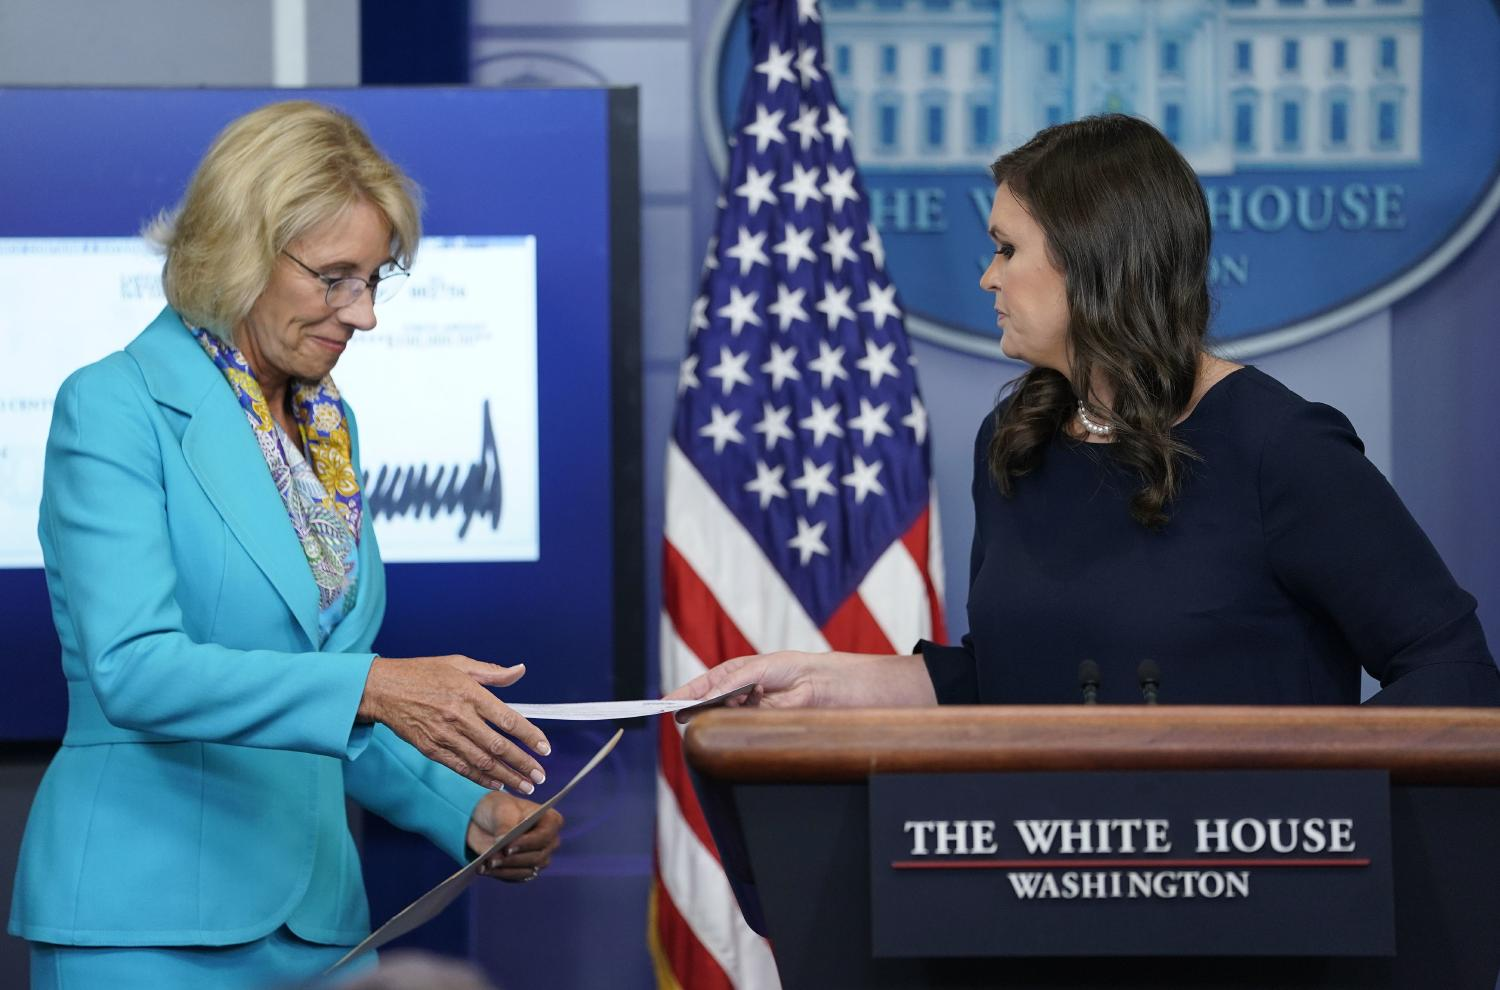 White House press secretary Sarah Huckabee Sanders, right, hands Education Secretary Betsy DeVos, left, a check signed by President Donald Trump in the Brady Press Briefing room of the White House in Washington, Wednesday, July 26, 2017. (AP)